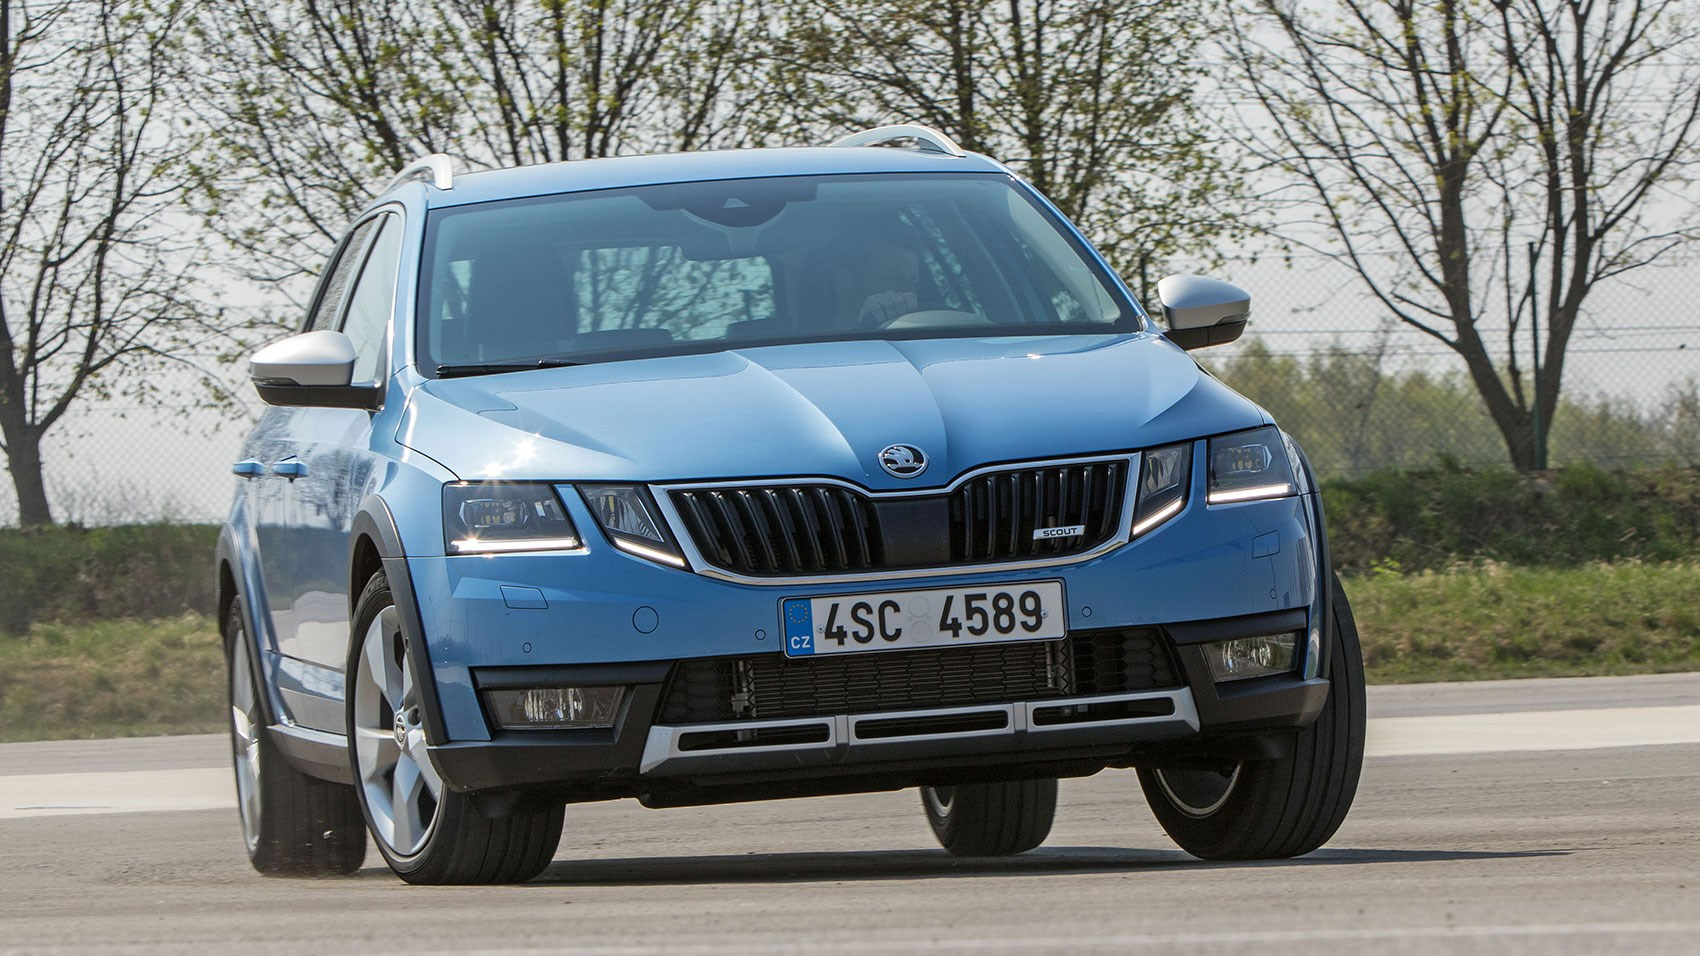 skoda octavia scout 2 0 tdi 150 4x4 facelift 2017 review by car magazine. Black Bedroom Furniture Sets. Home Design Ideas